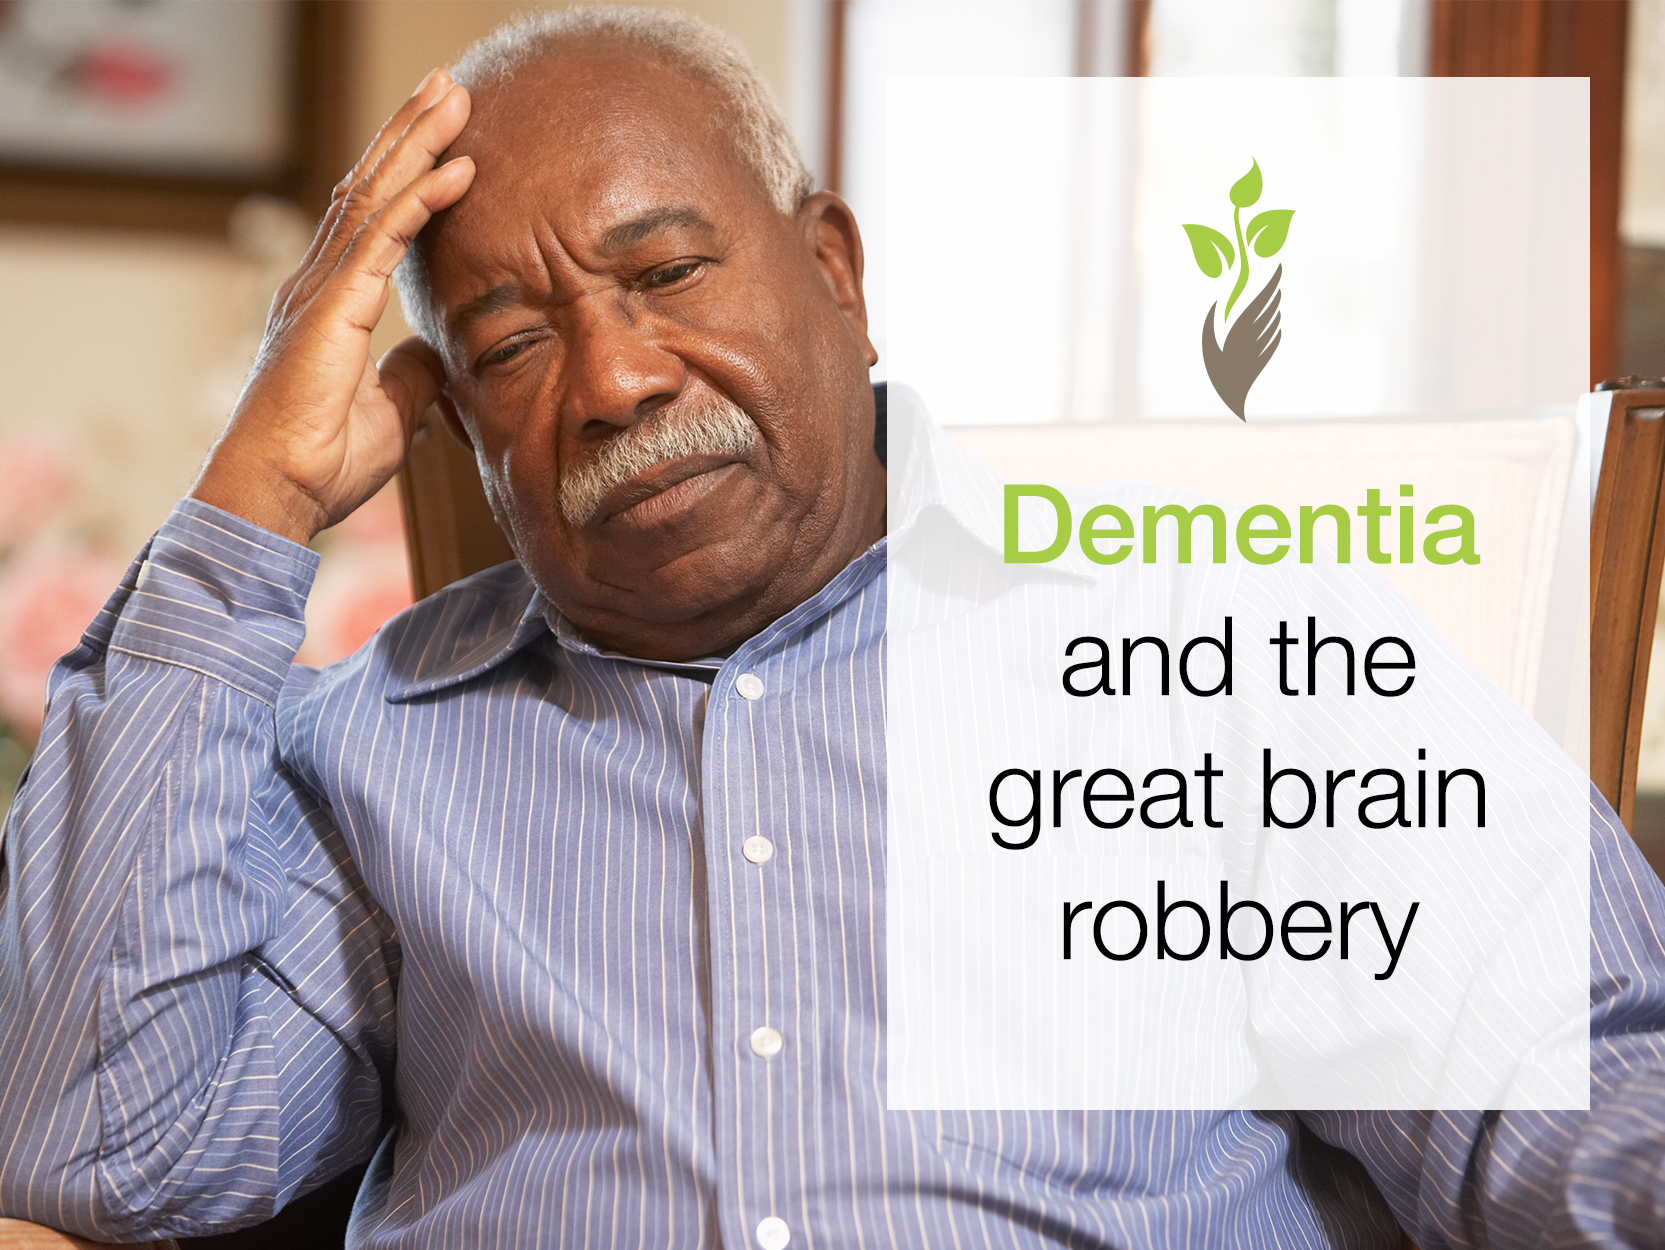 Dementia and the great brain robbery